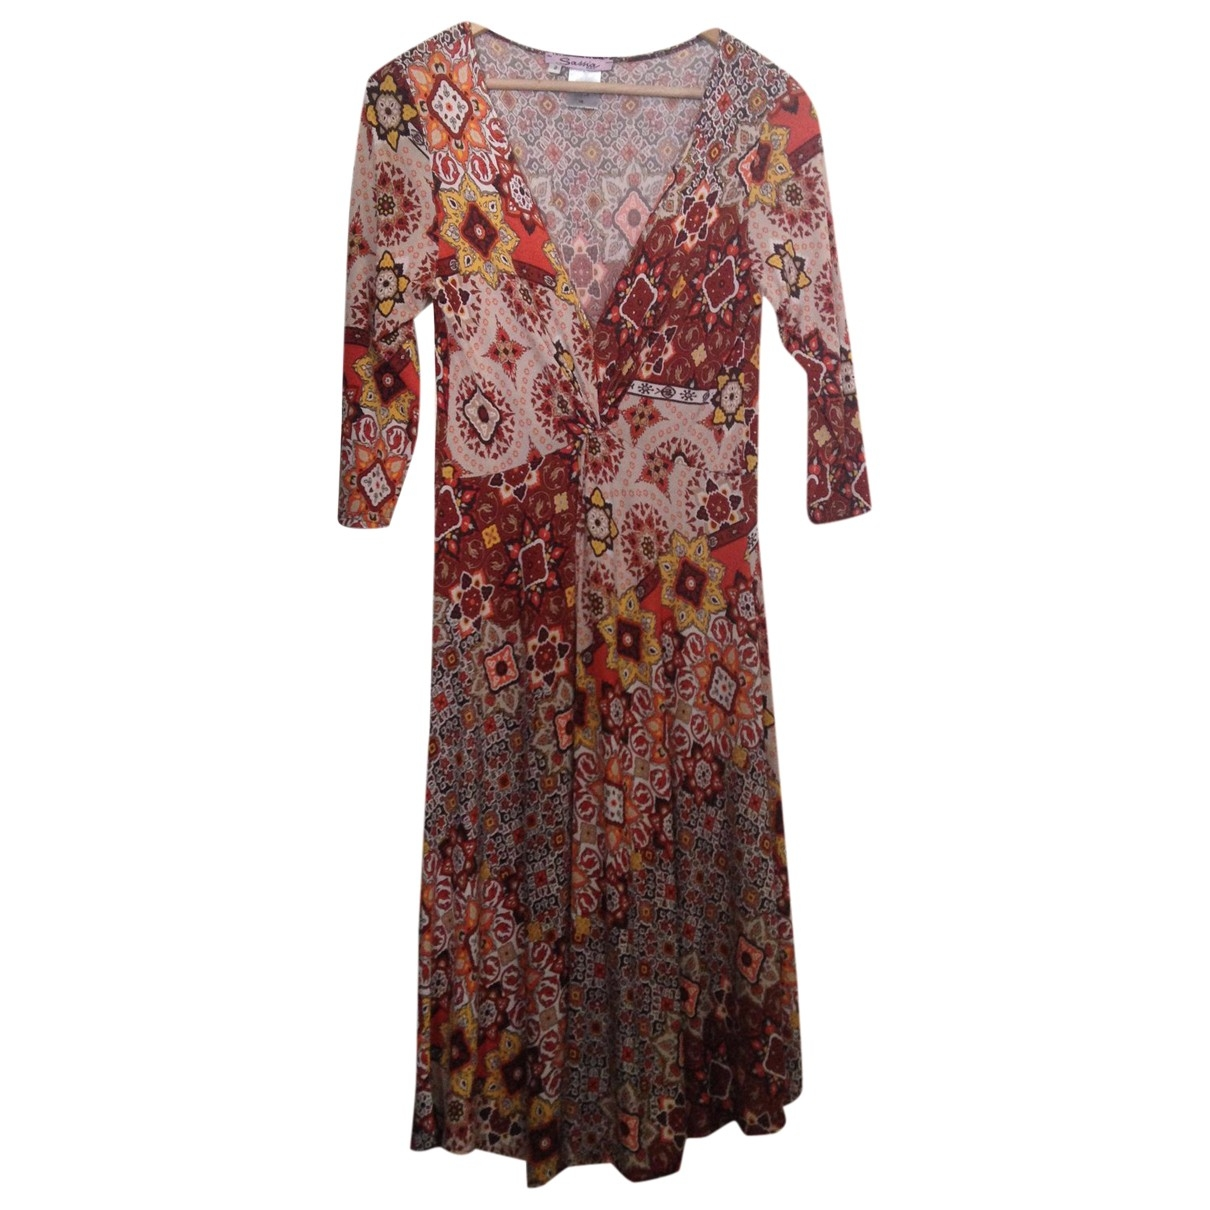 Non Signe / Unsigned \N Kleid in  Braun Polyester